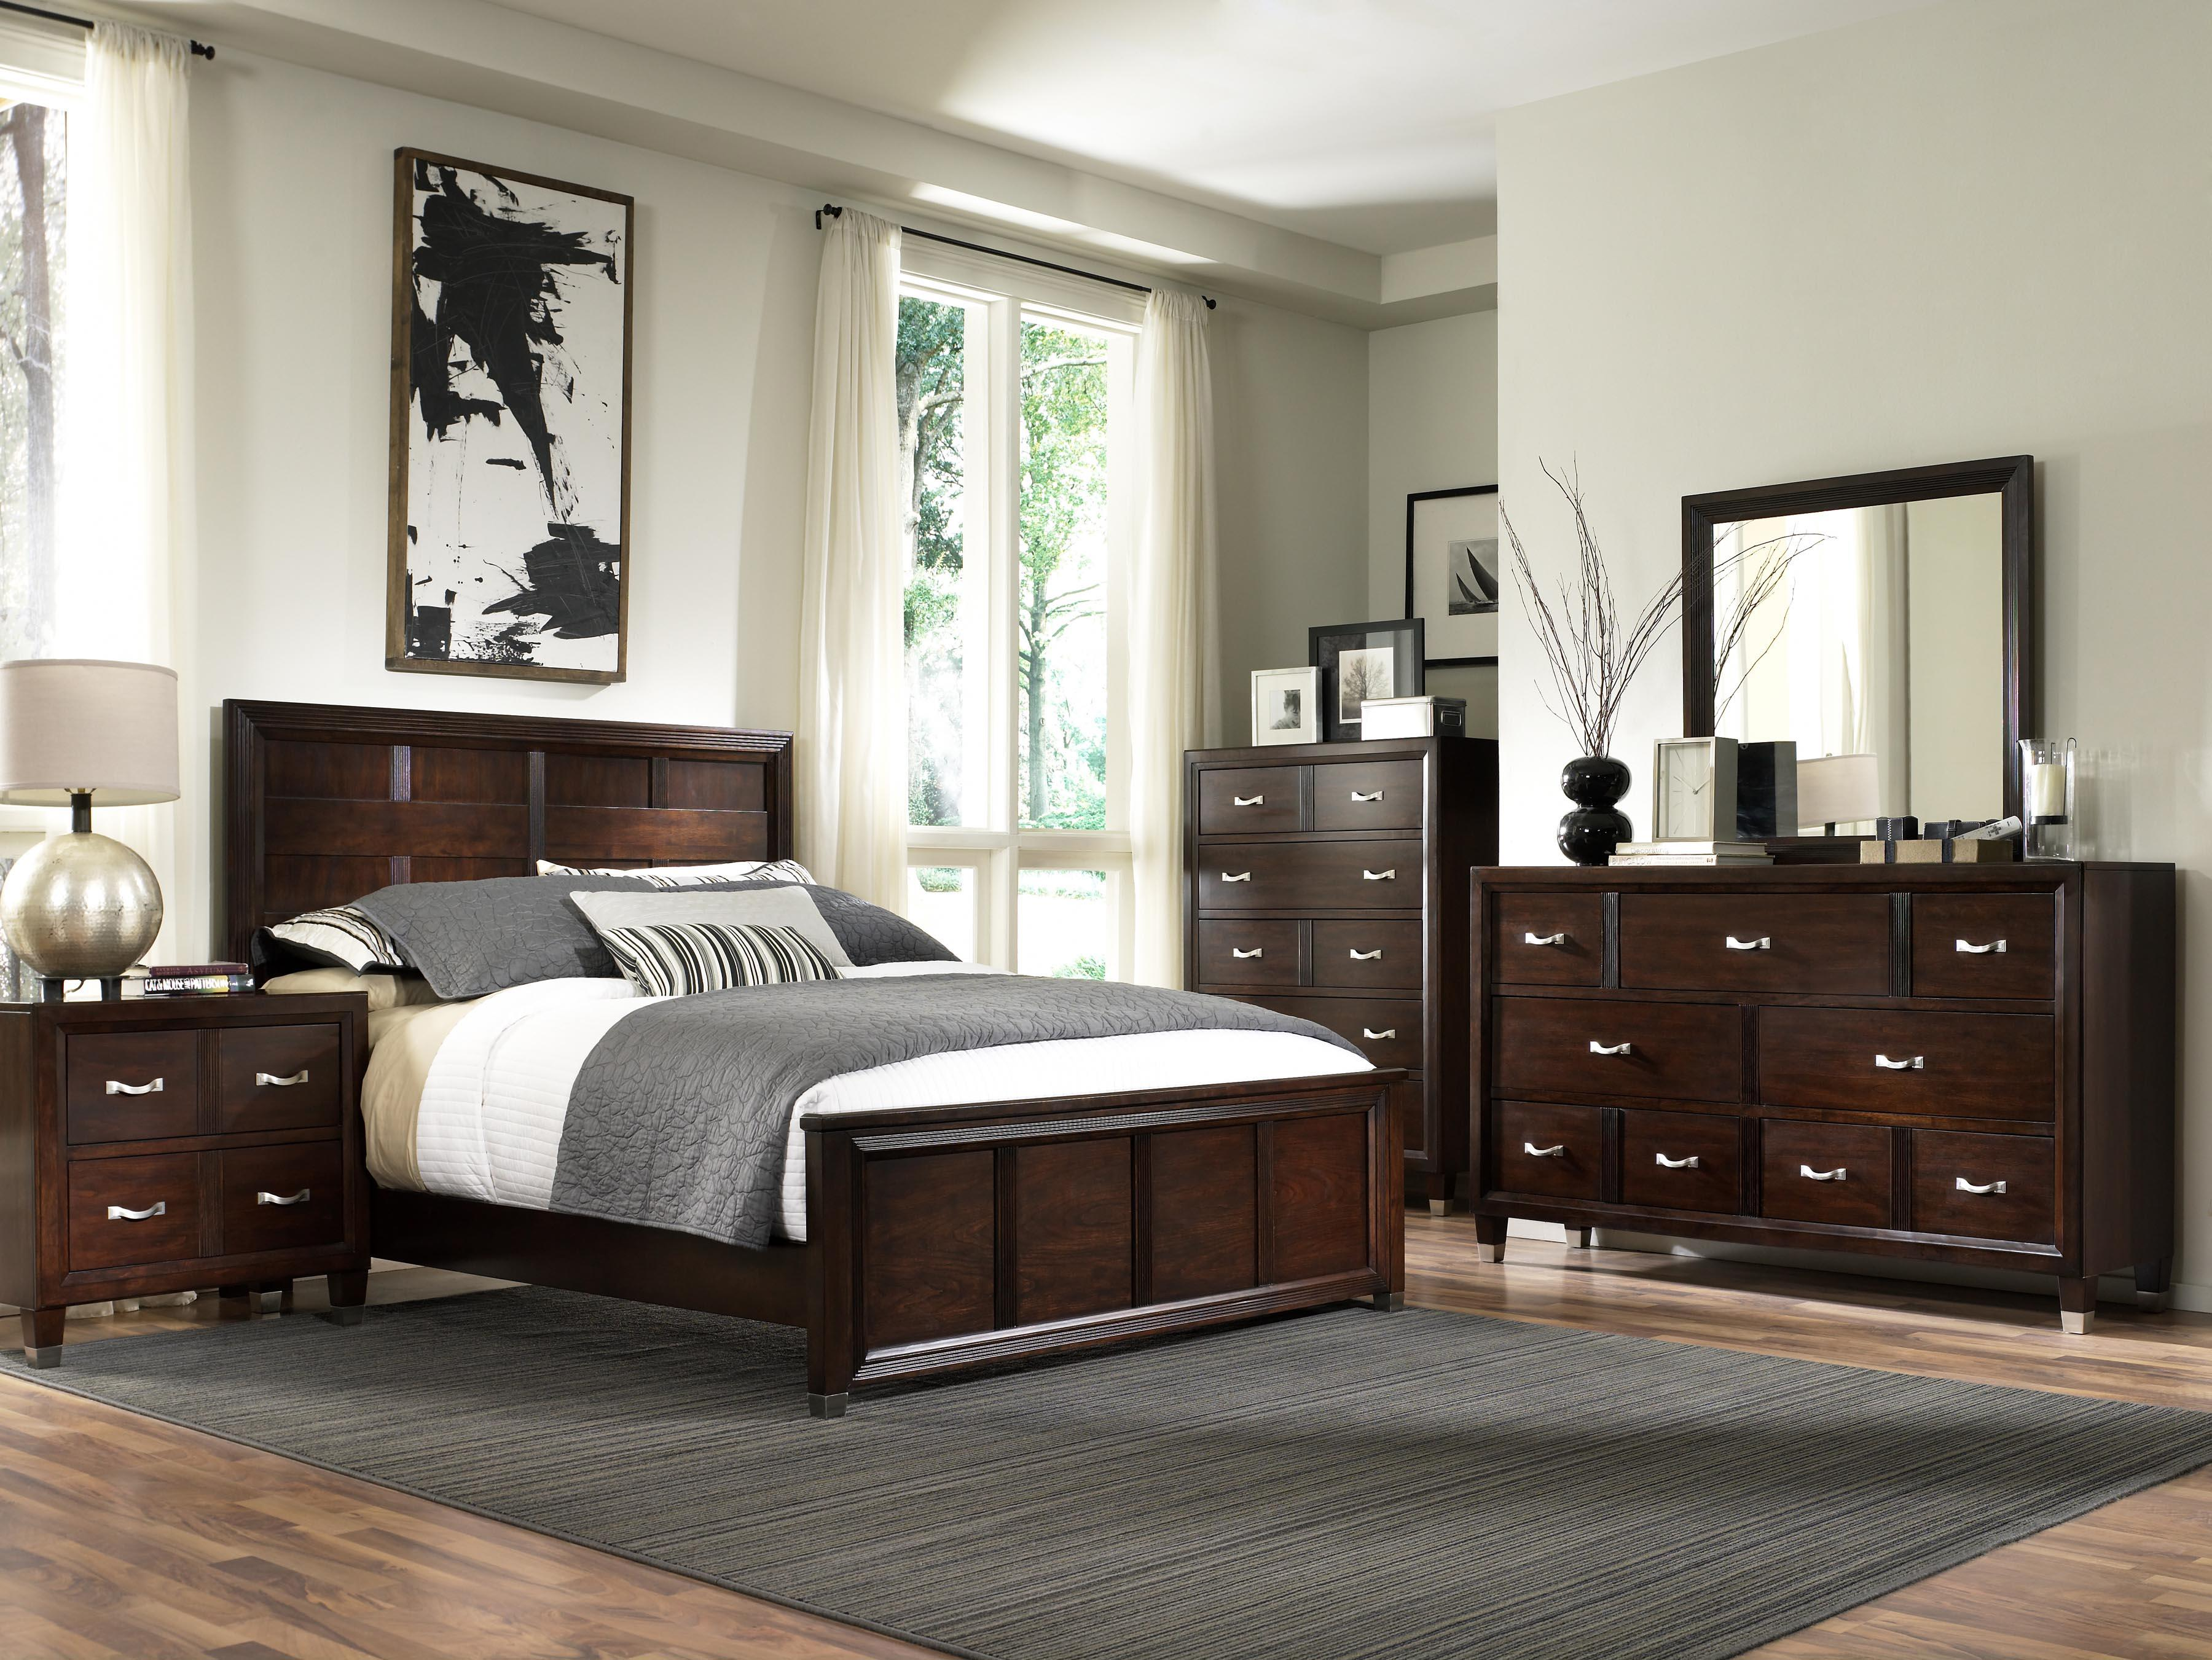 Broyhill Furniture Eastlake 2 King Bedroom Group - Item Number: 4264 K Bedroom Group 2